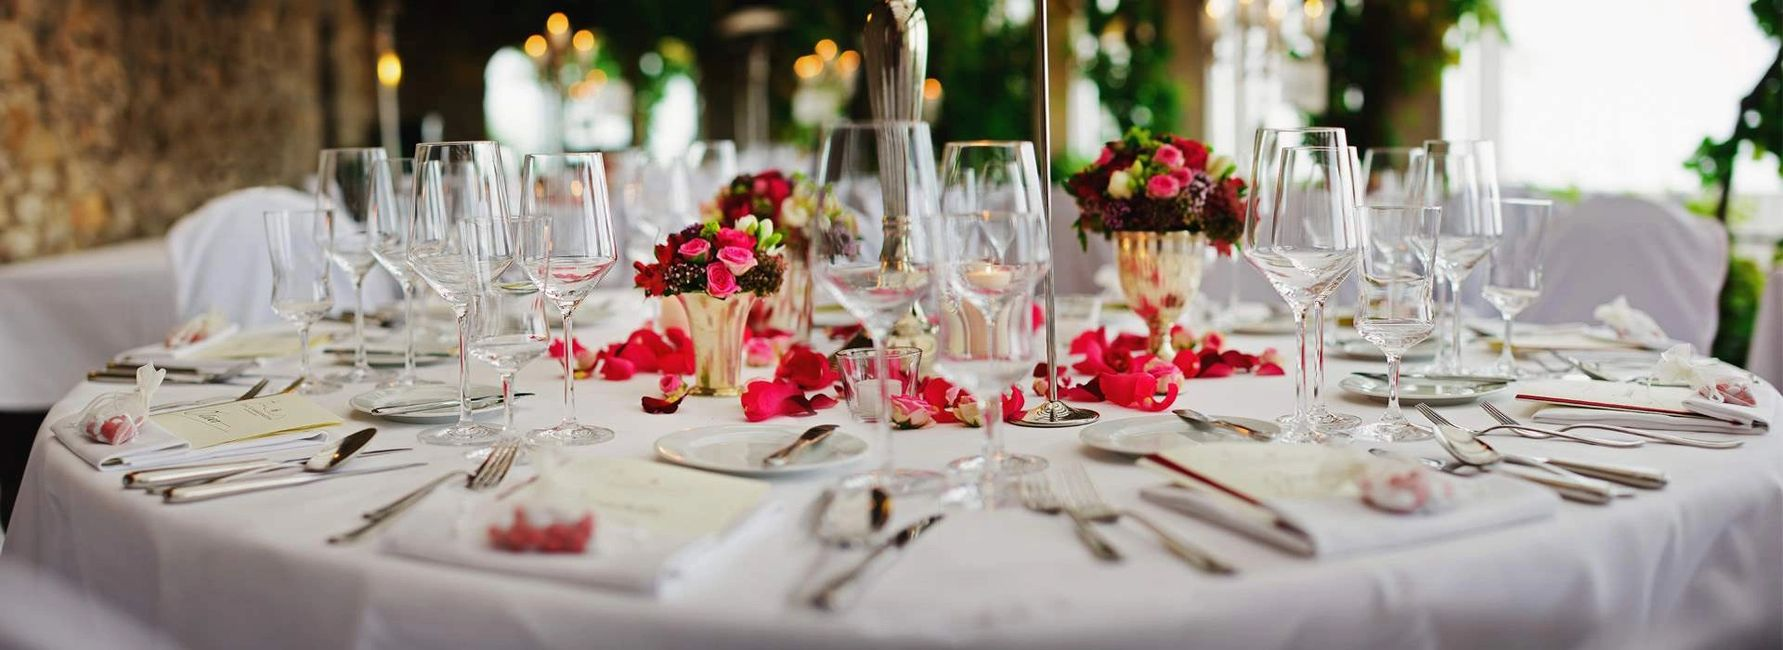 Elegantly organized table for an event with a white map flower bouquets, wine glasses and cutlery